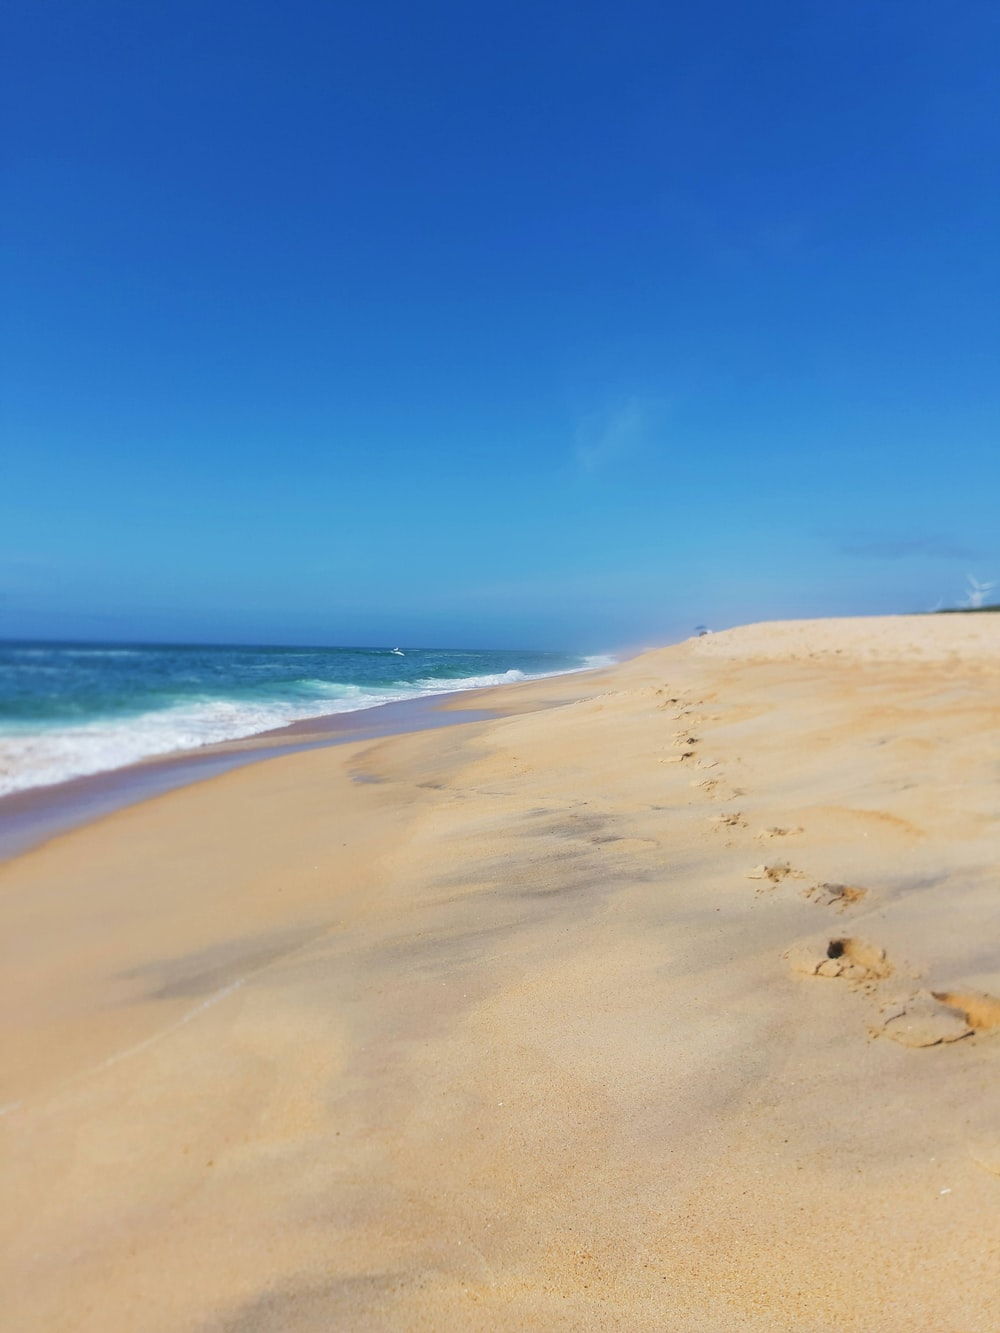 brown sand beach under blue sky during daytime